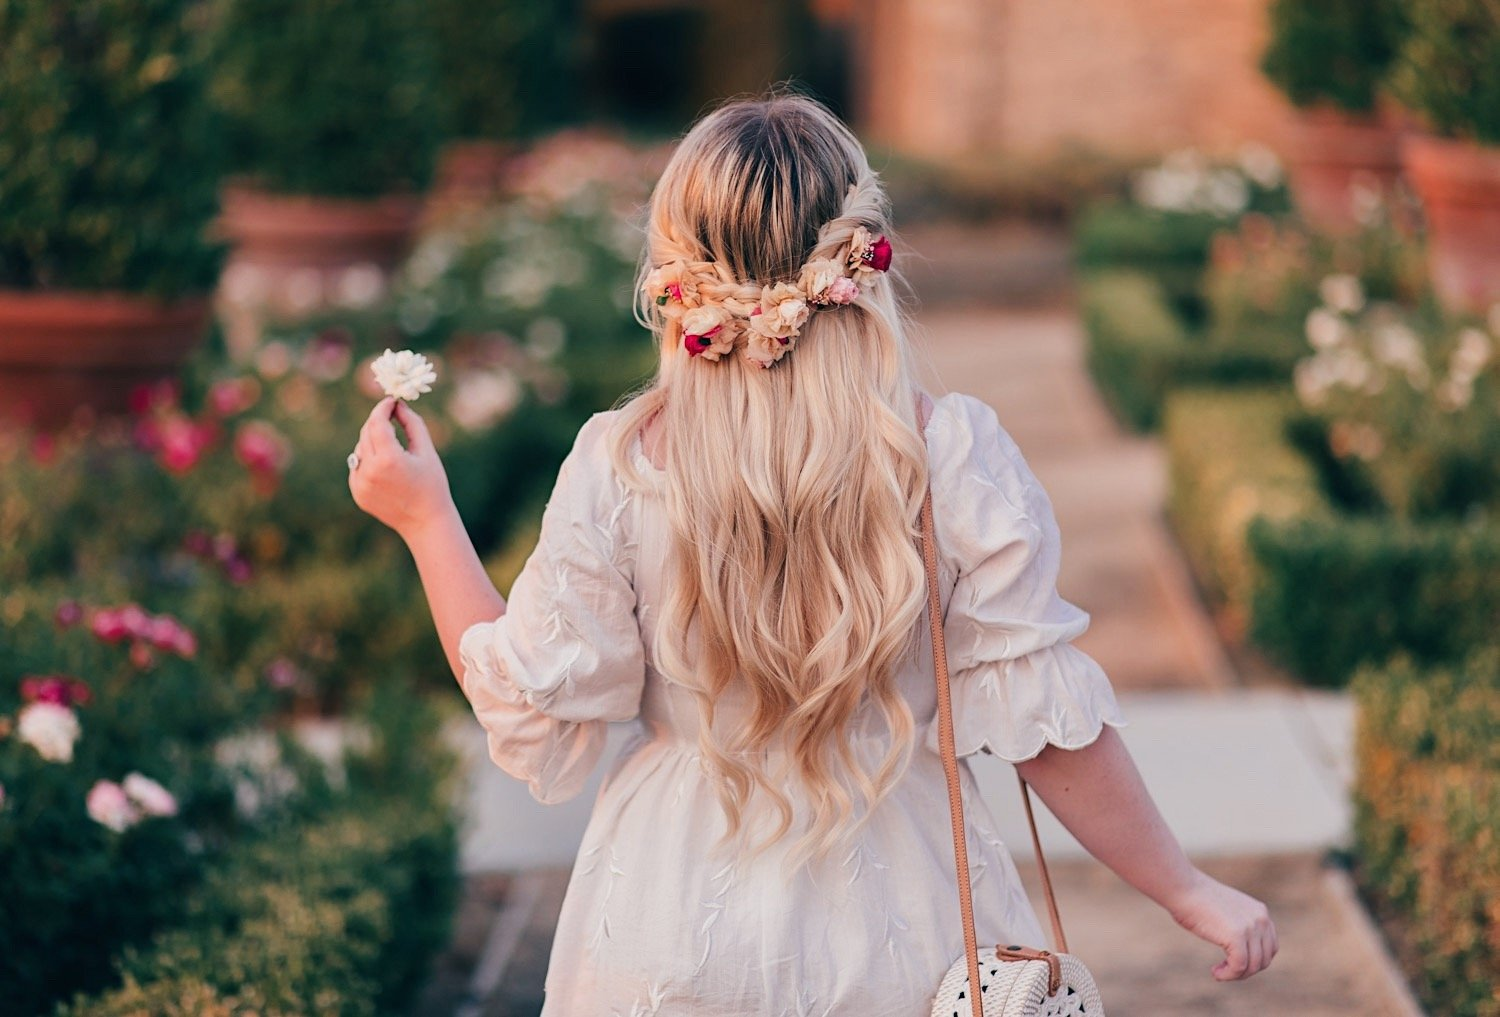 Fashion Blogger Elizabeth Hugen of Lizzie in Lace shares a Pinterest Inspired Boho Braid with Flowers